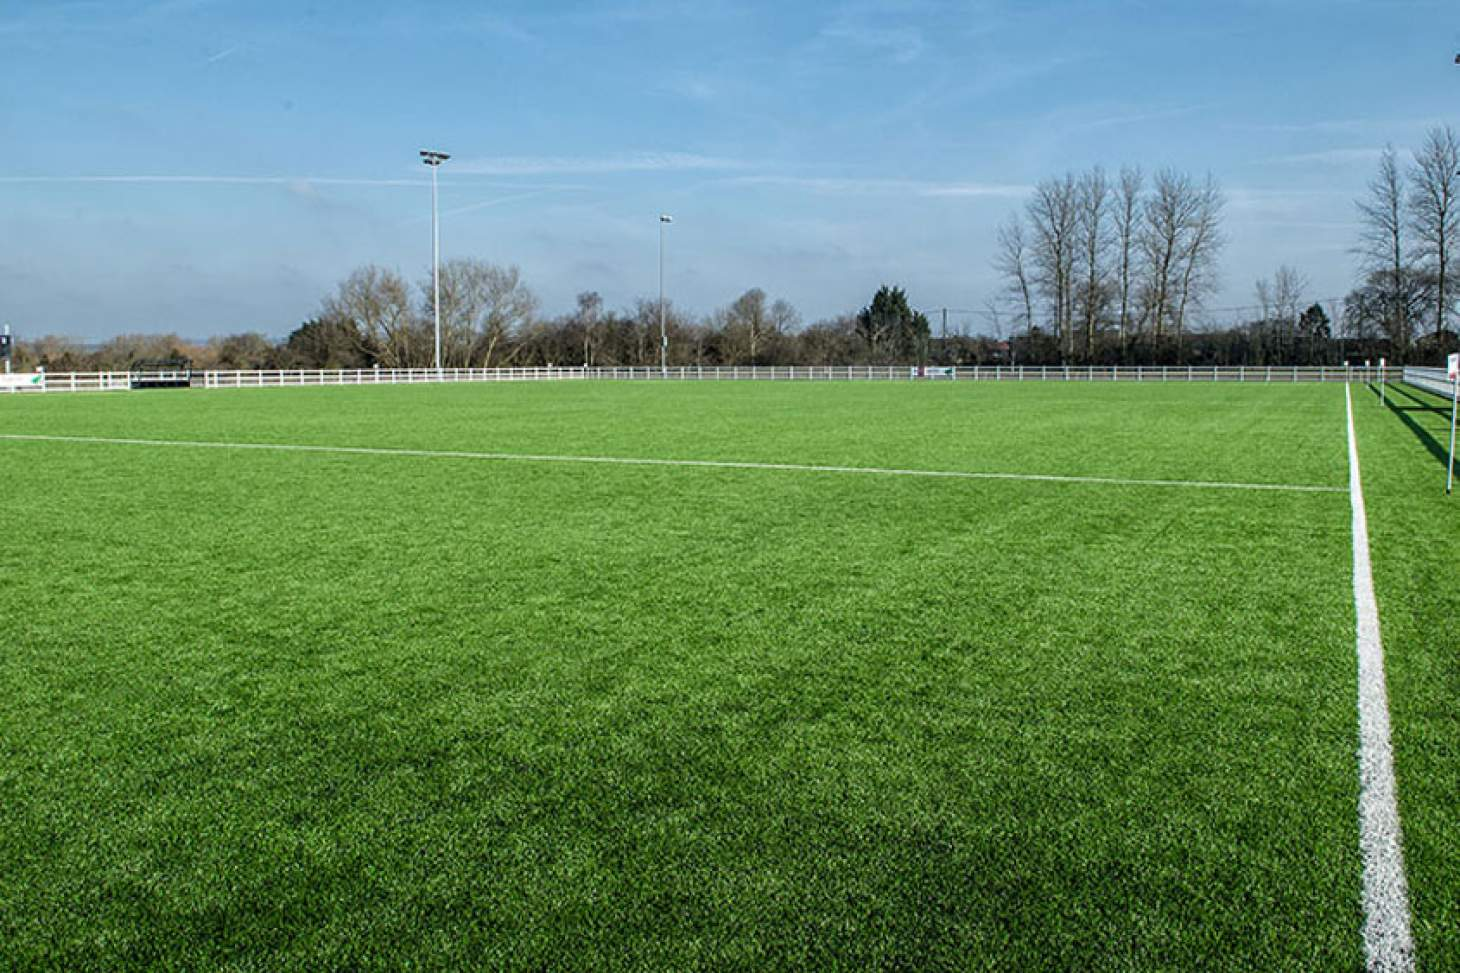 PlayFootball Penrith 8 a side | 3G Astroturf football pitch